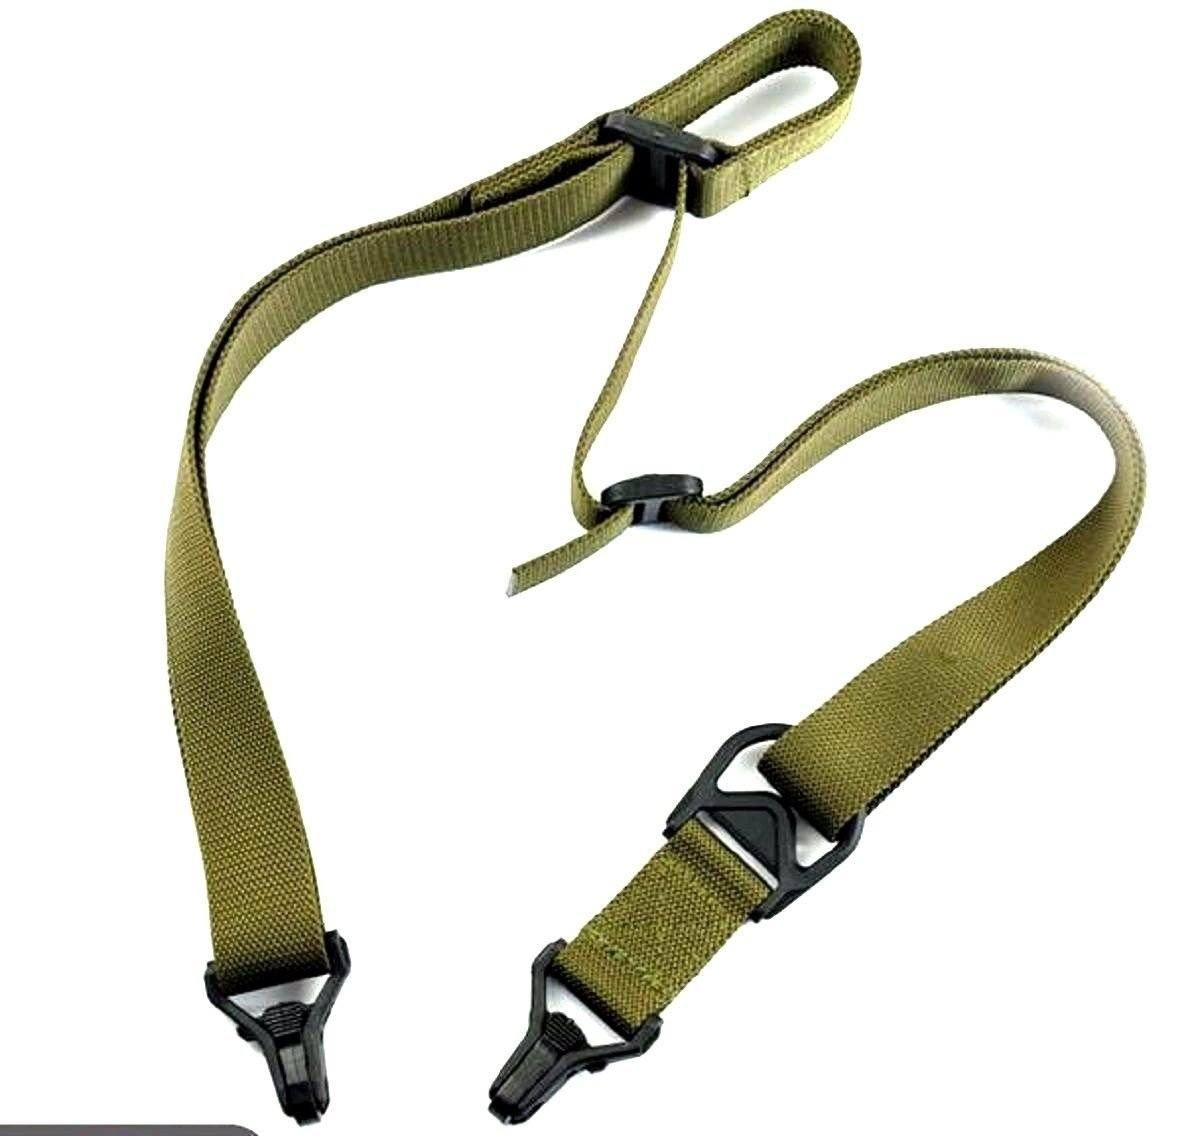 OD Green Tactical AR15 Rifle Gun Strap Slings Green Blob Outdoors